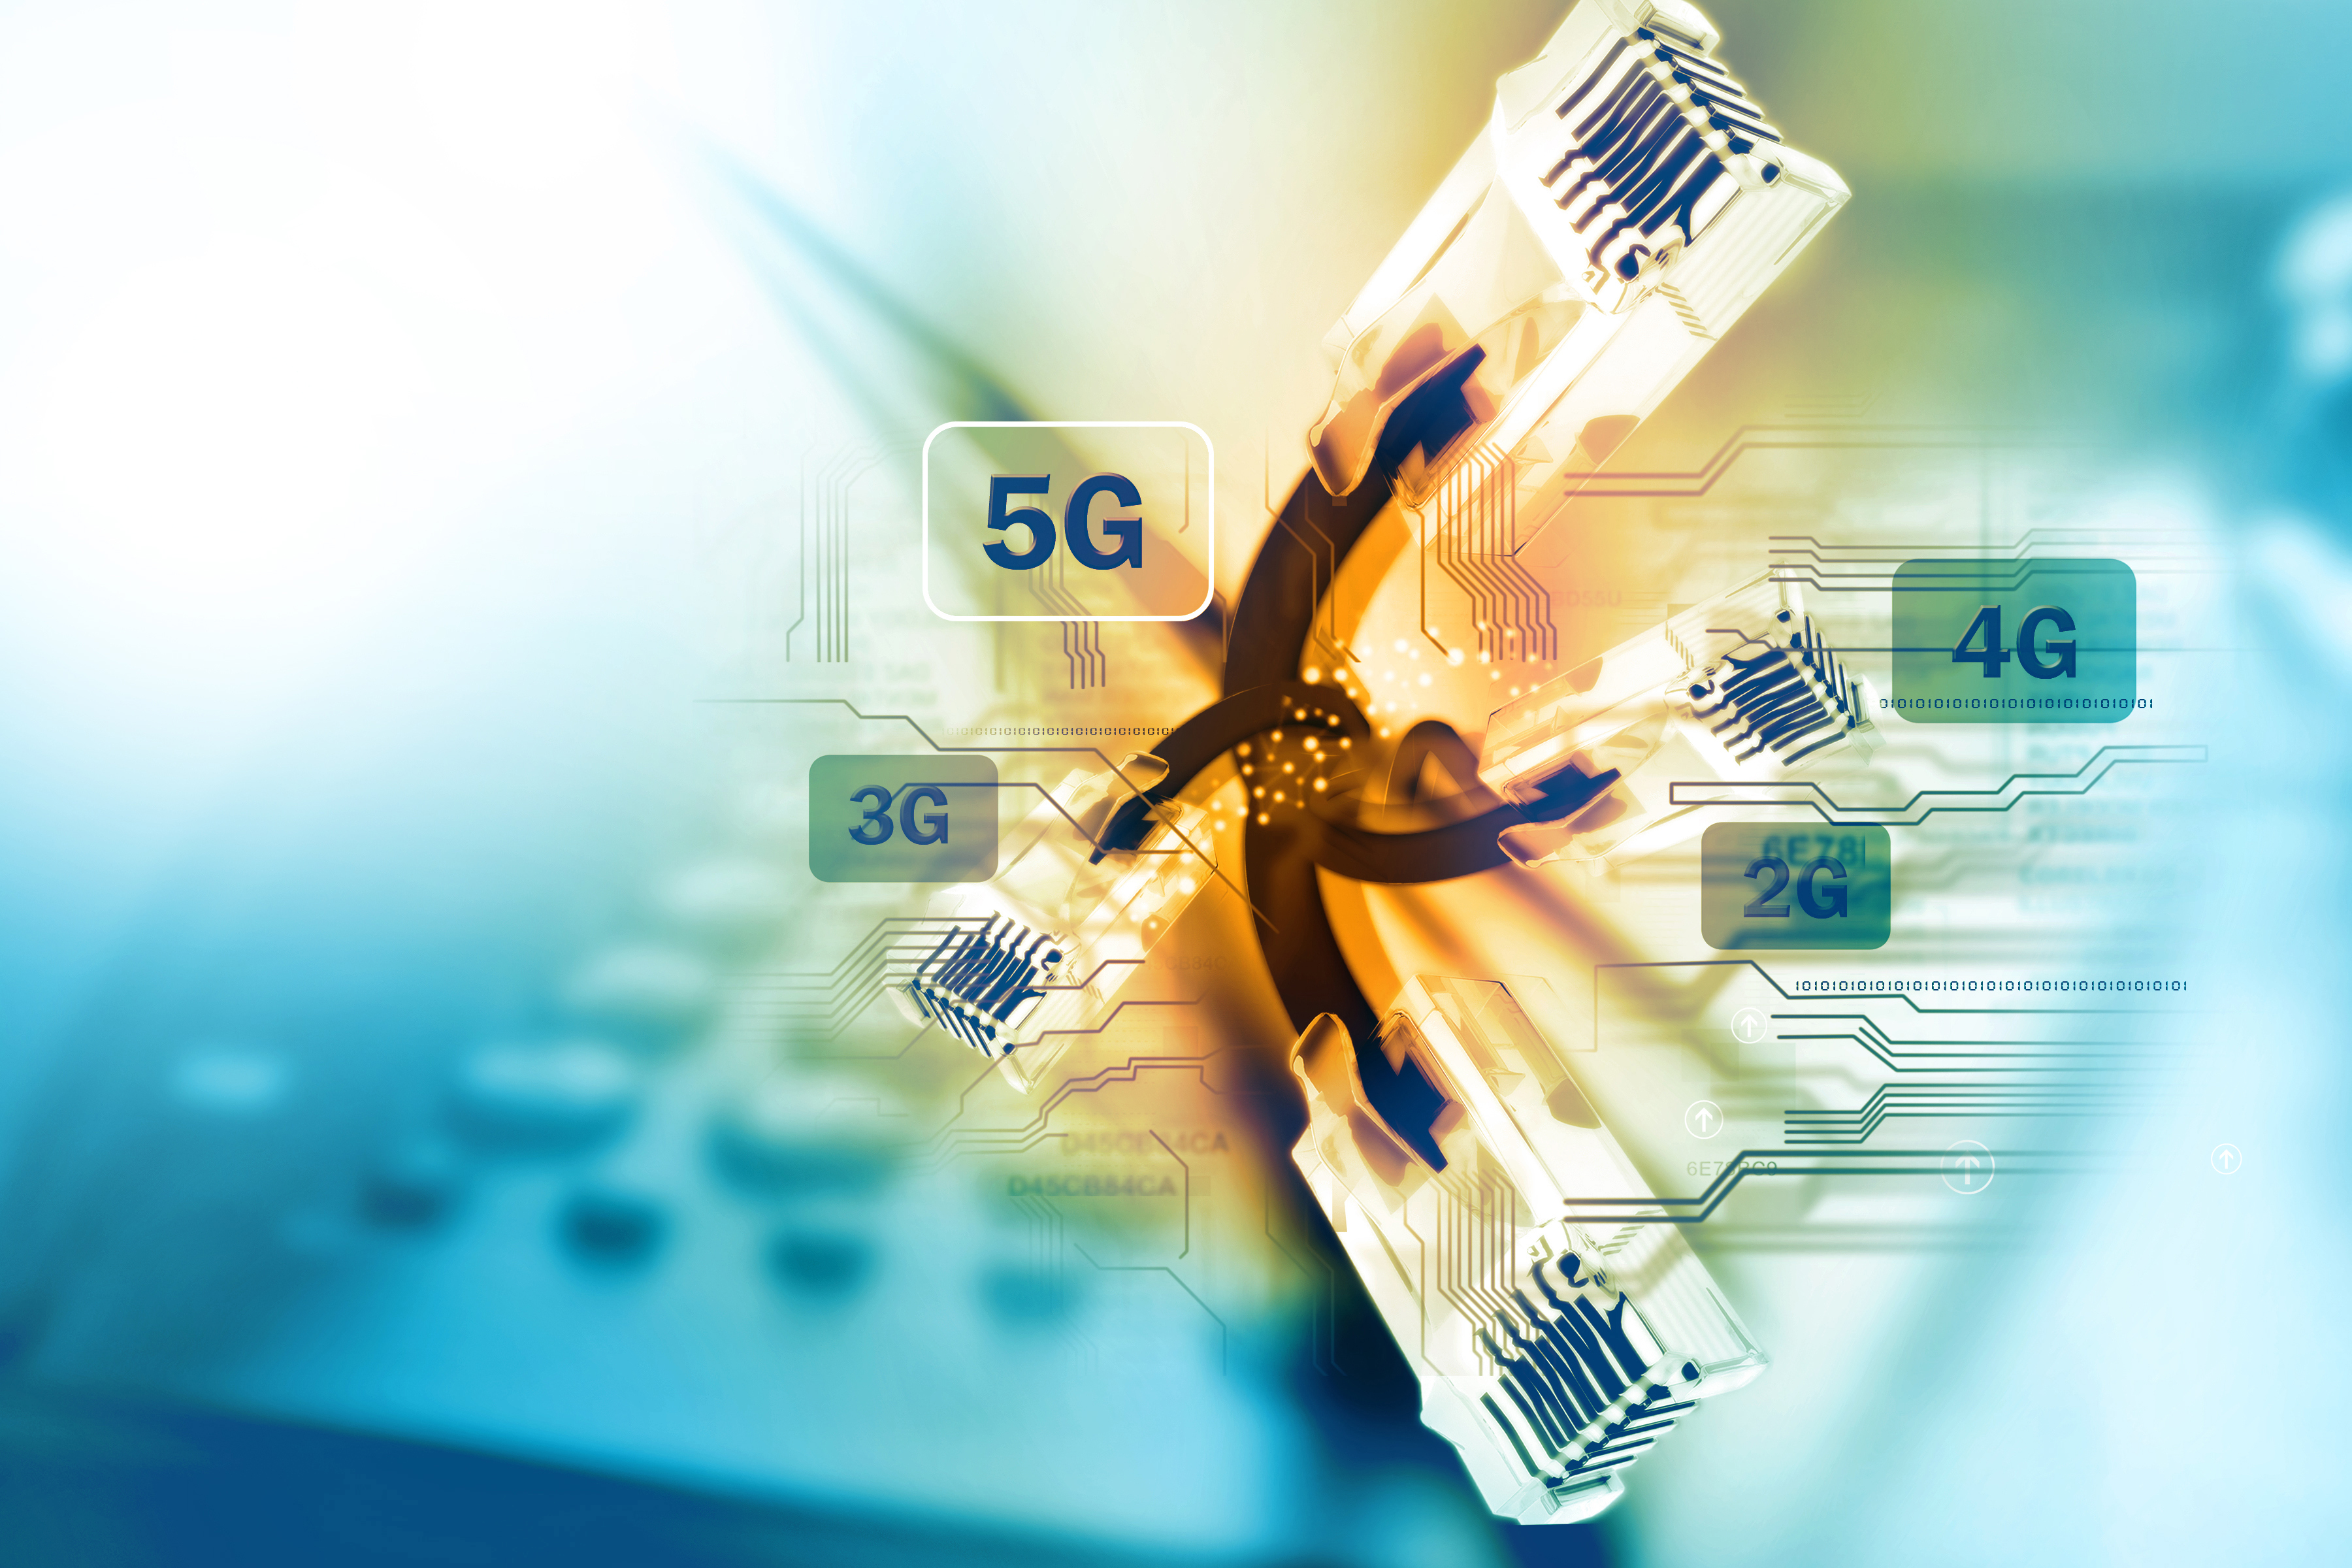 When Can We Expect To See 5G?